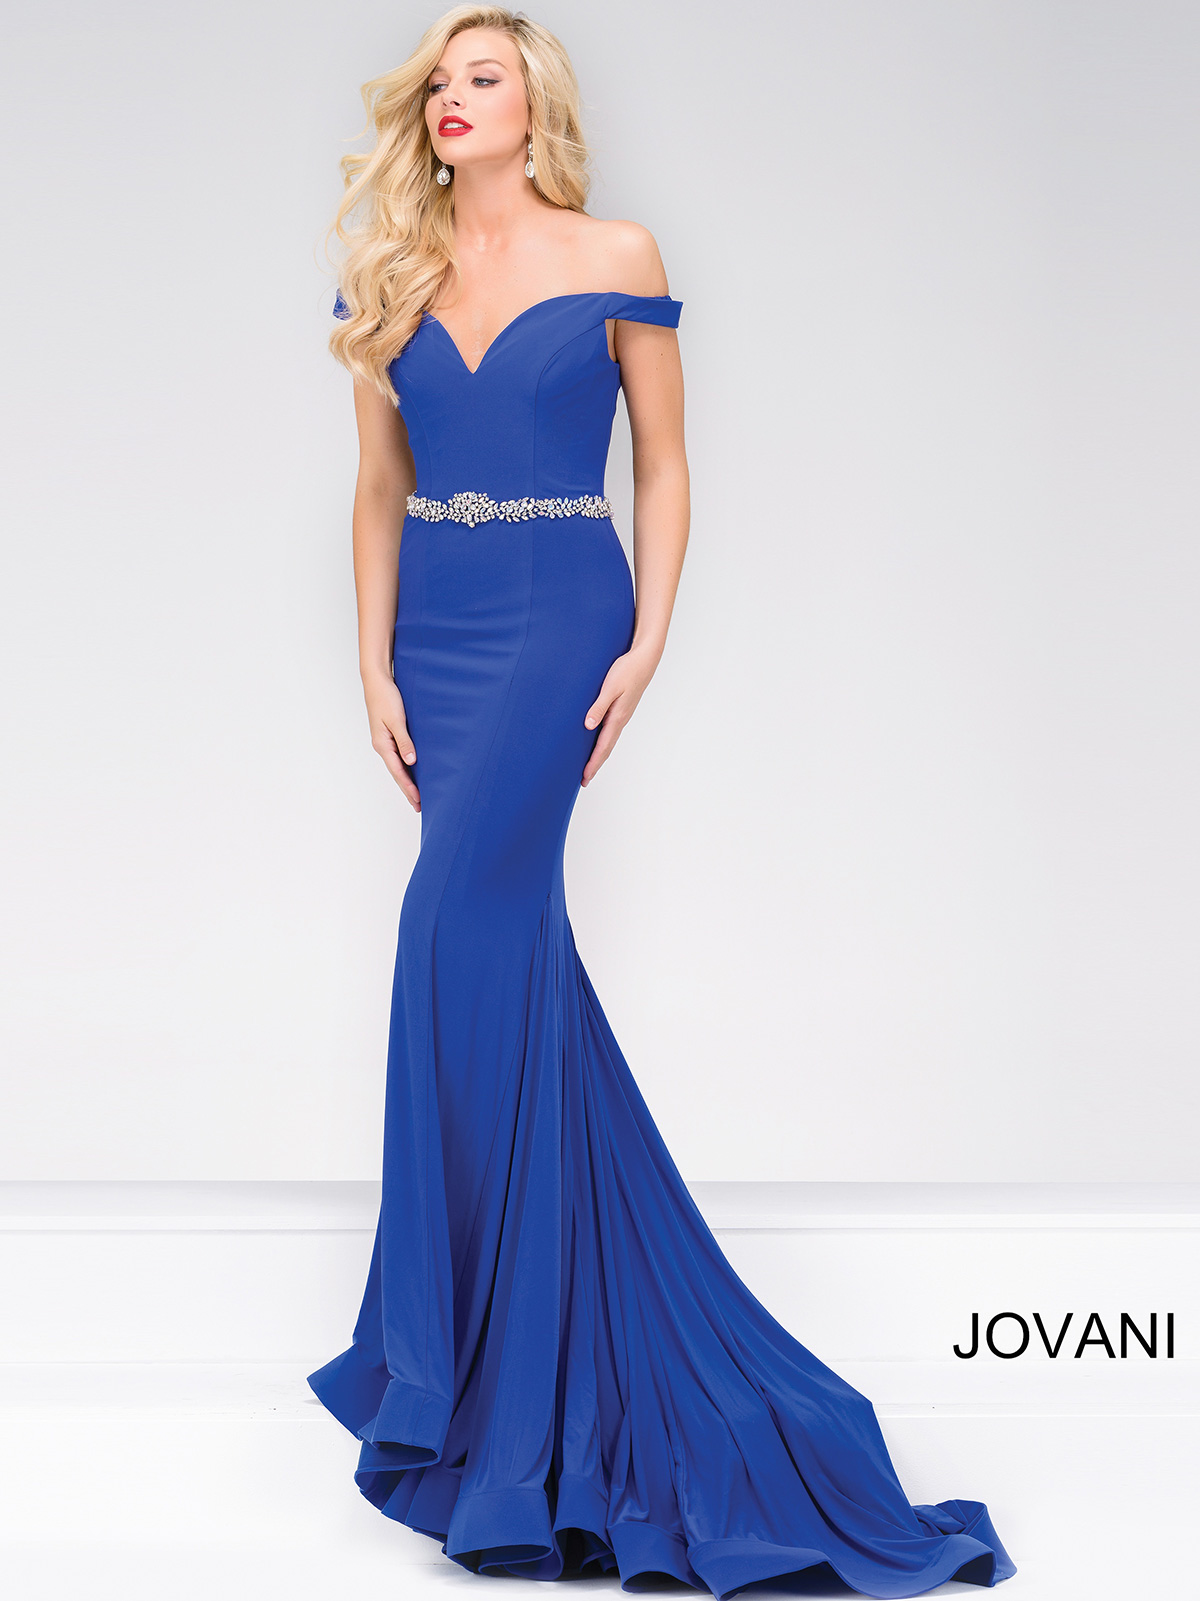 Jovani 49254 Fitted Jersey Pageant Dress|PageantDesigns.com